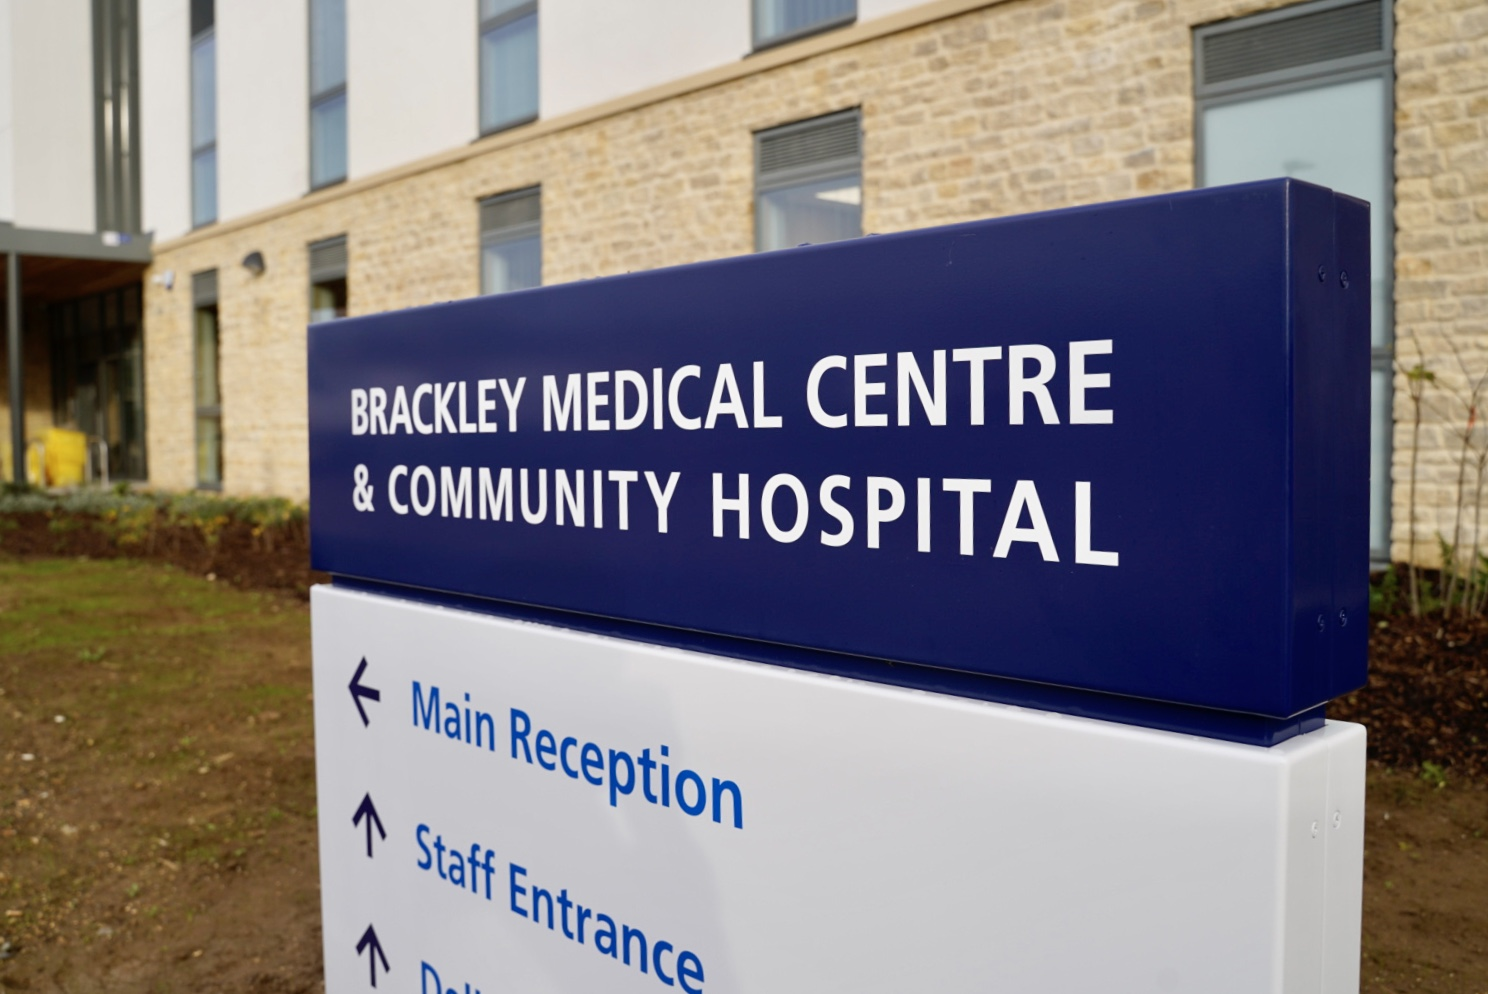 Nurses Wanted:  Northamptonshire NHS seeks six Band 5 nurses for a new community hospital that opened in Brackley in October 2020